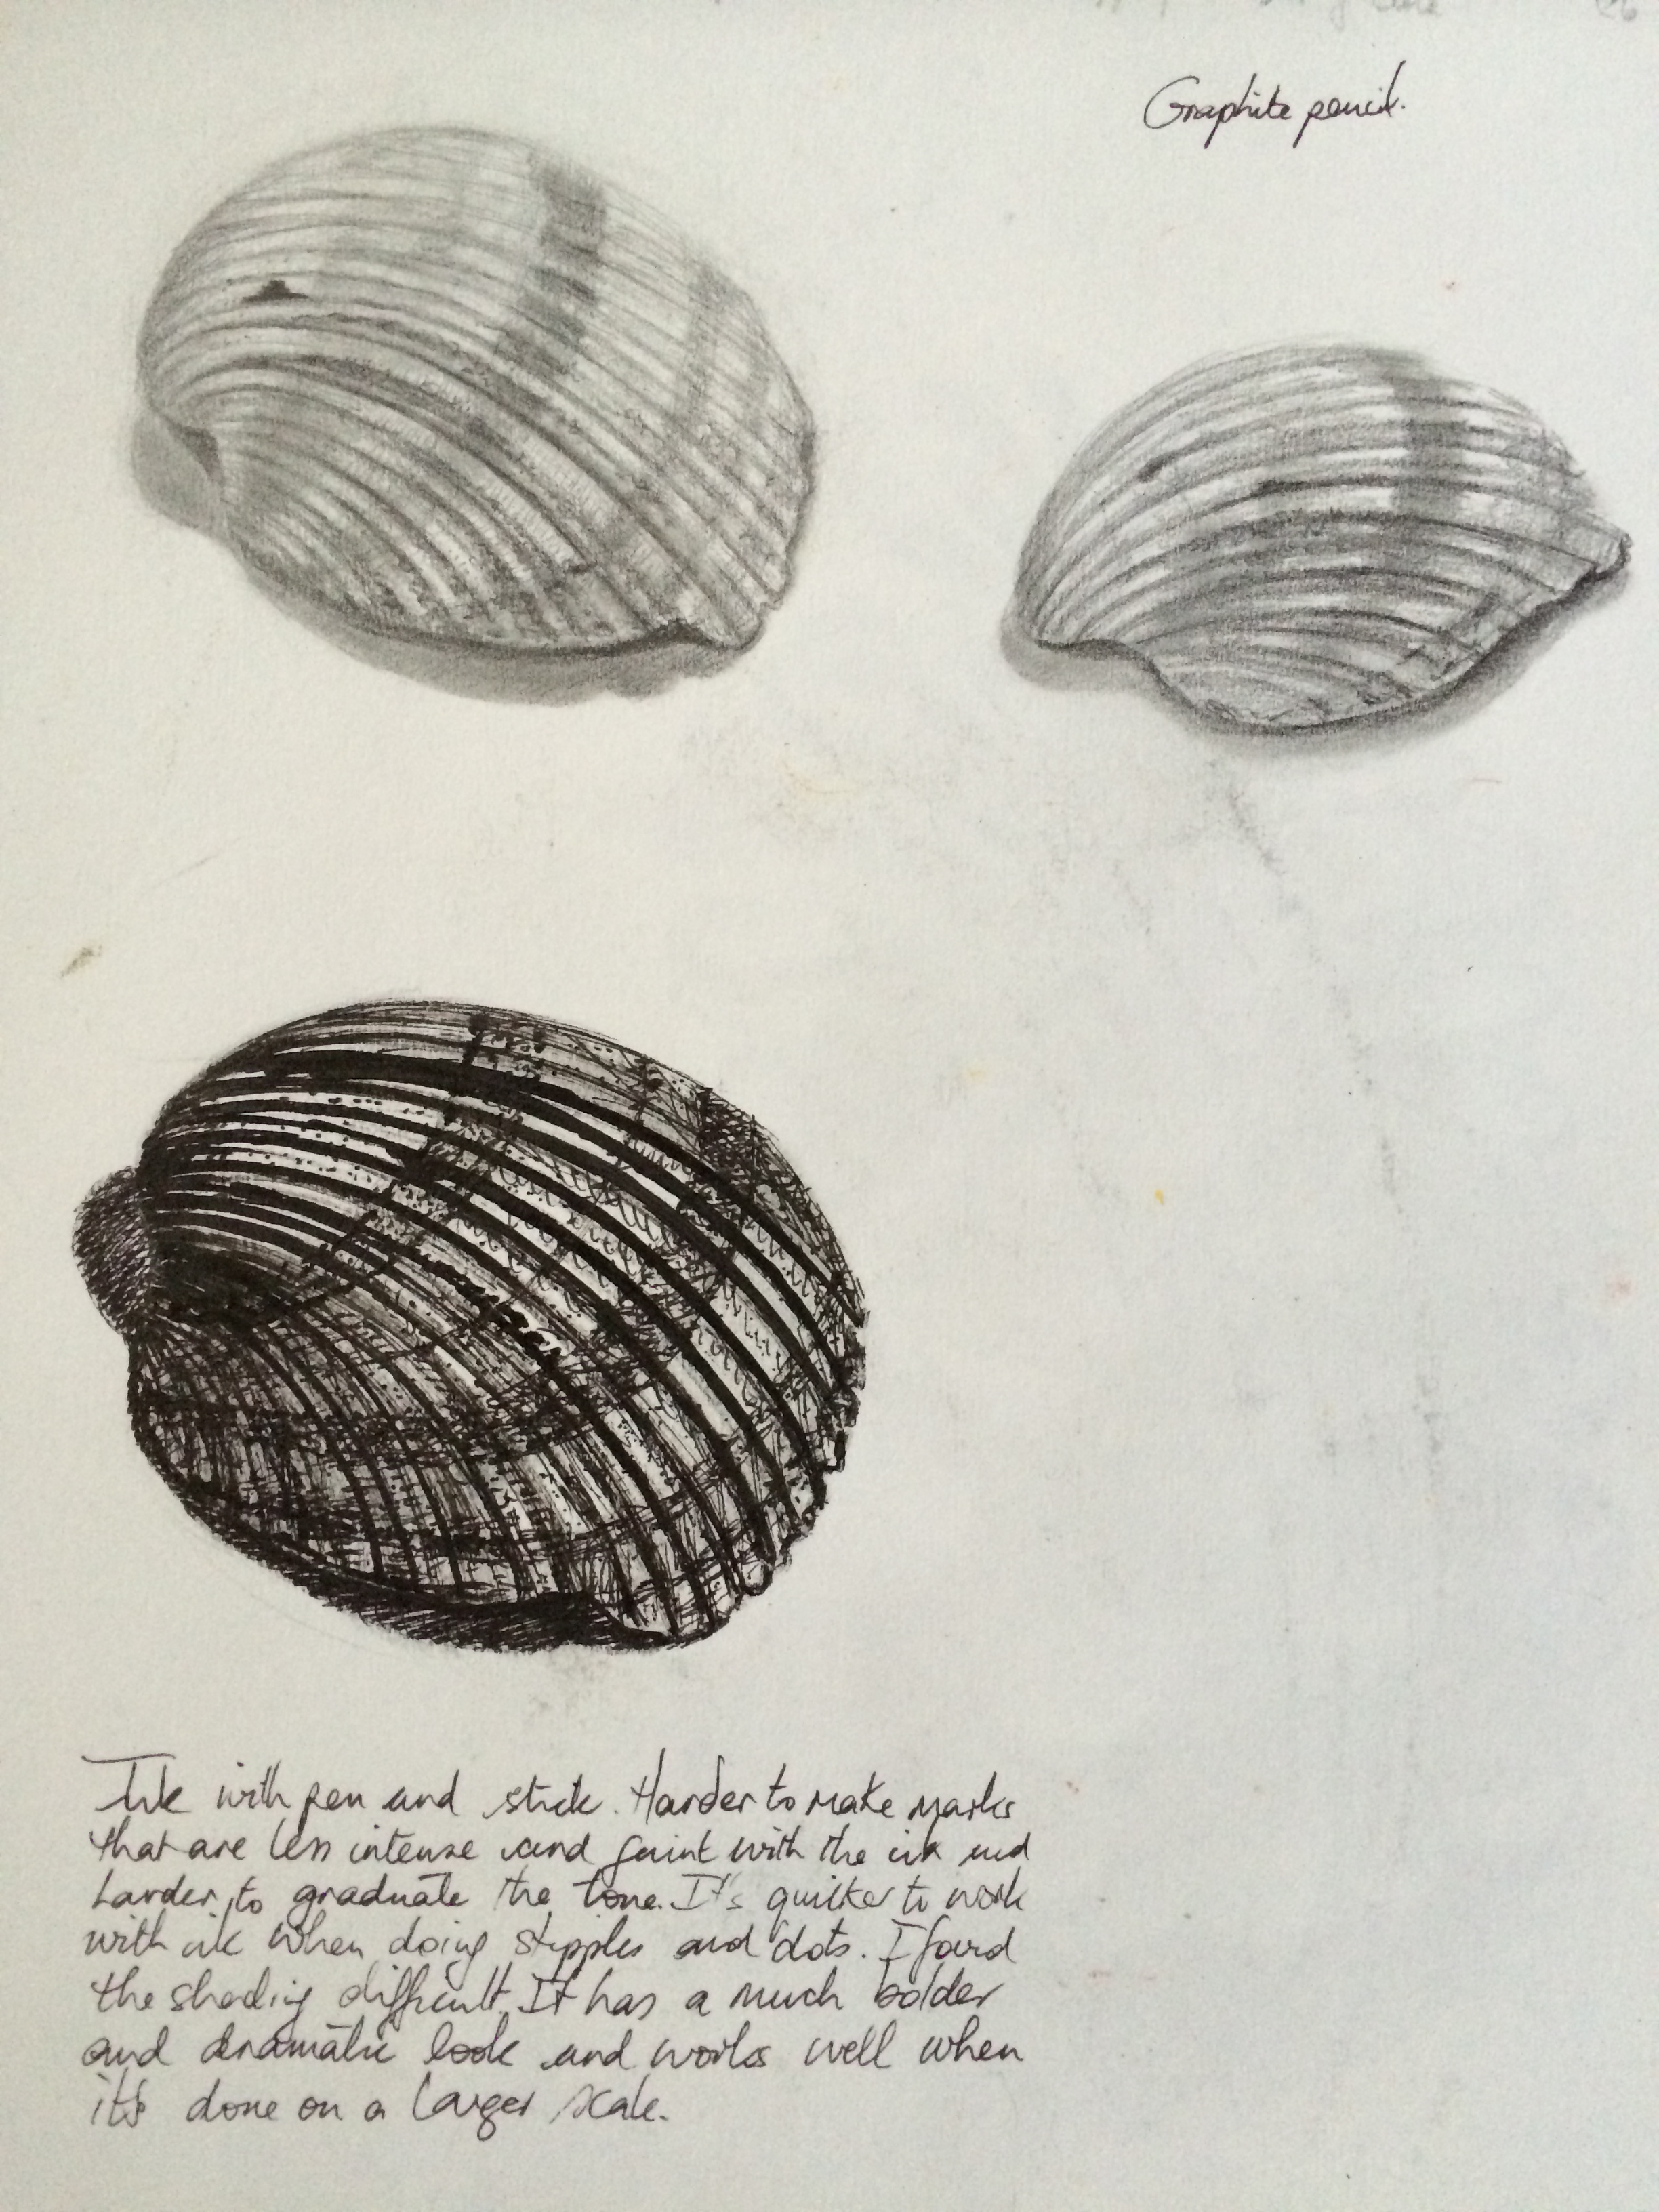 Drawn shell pen drawing Pencil Exercise: and with drawn